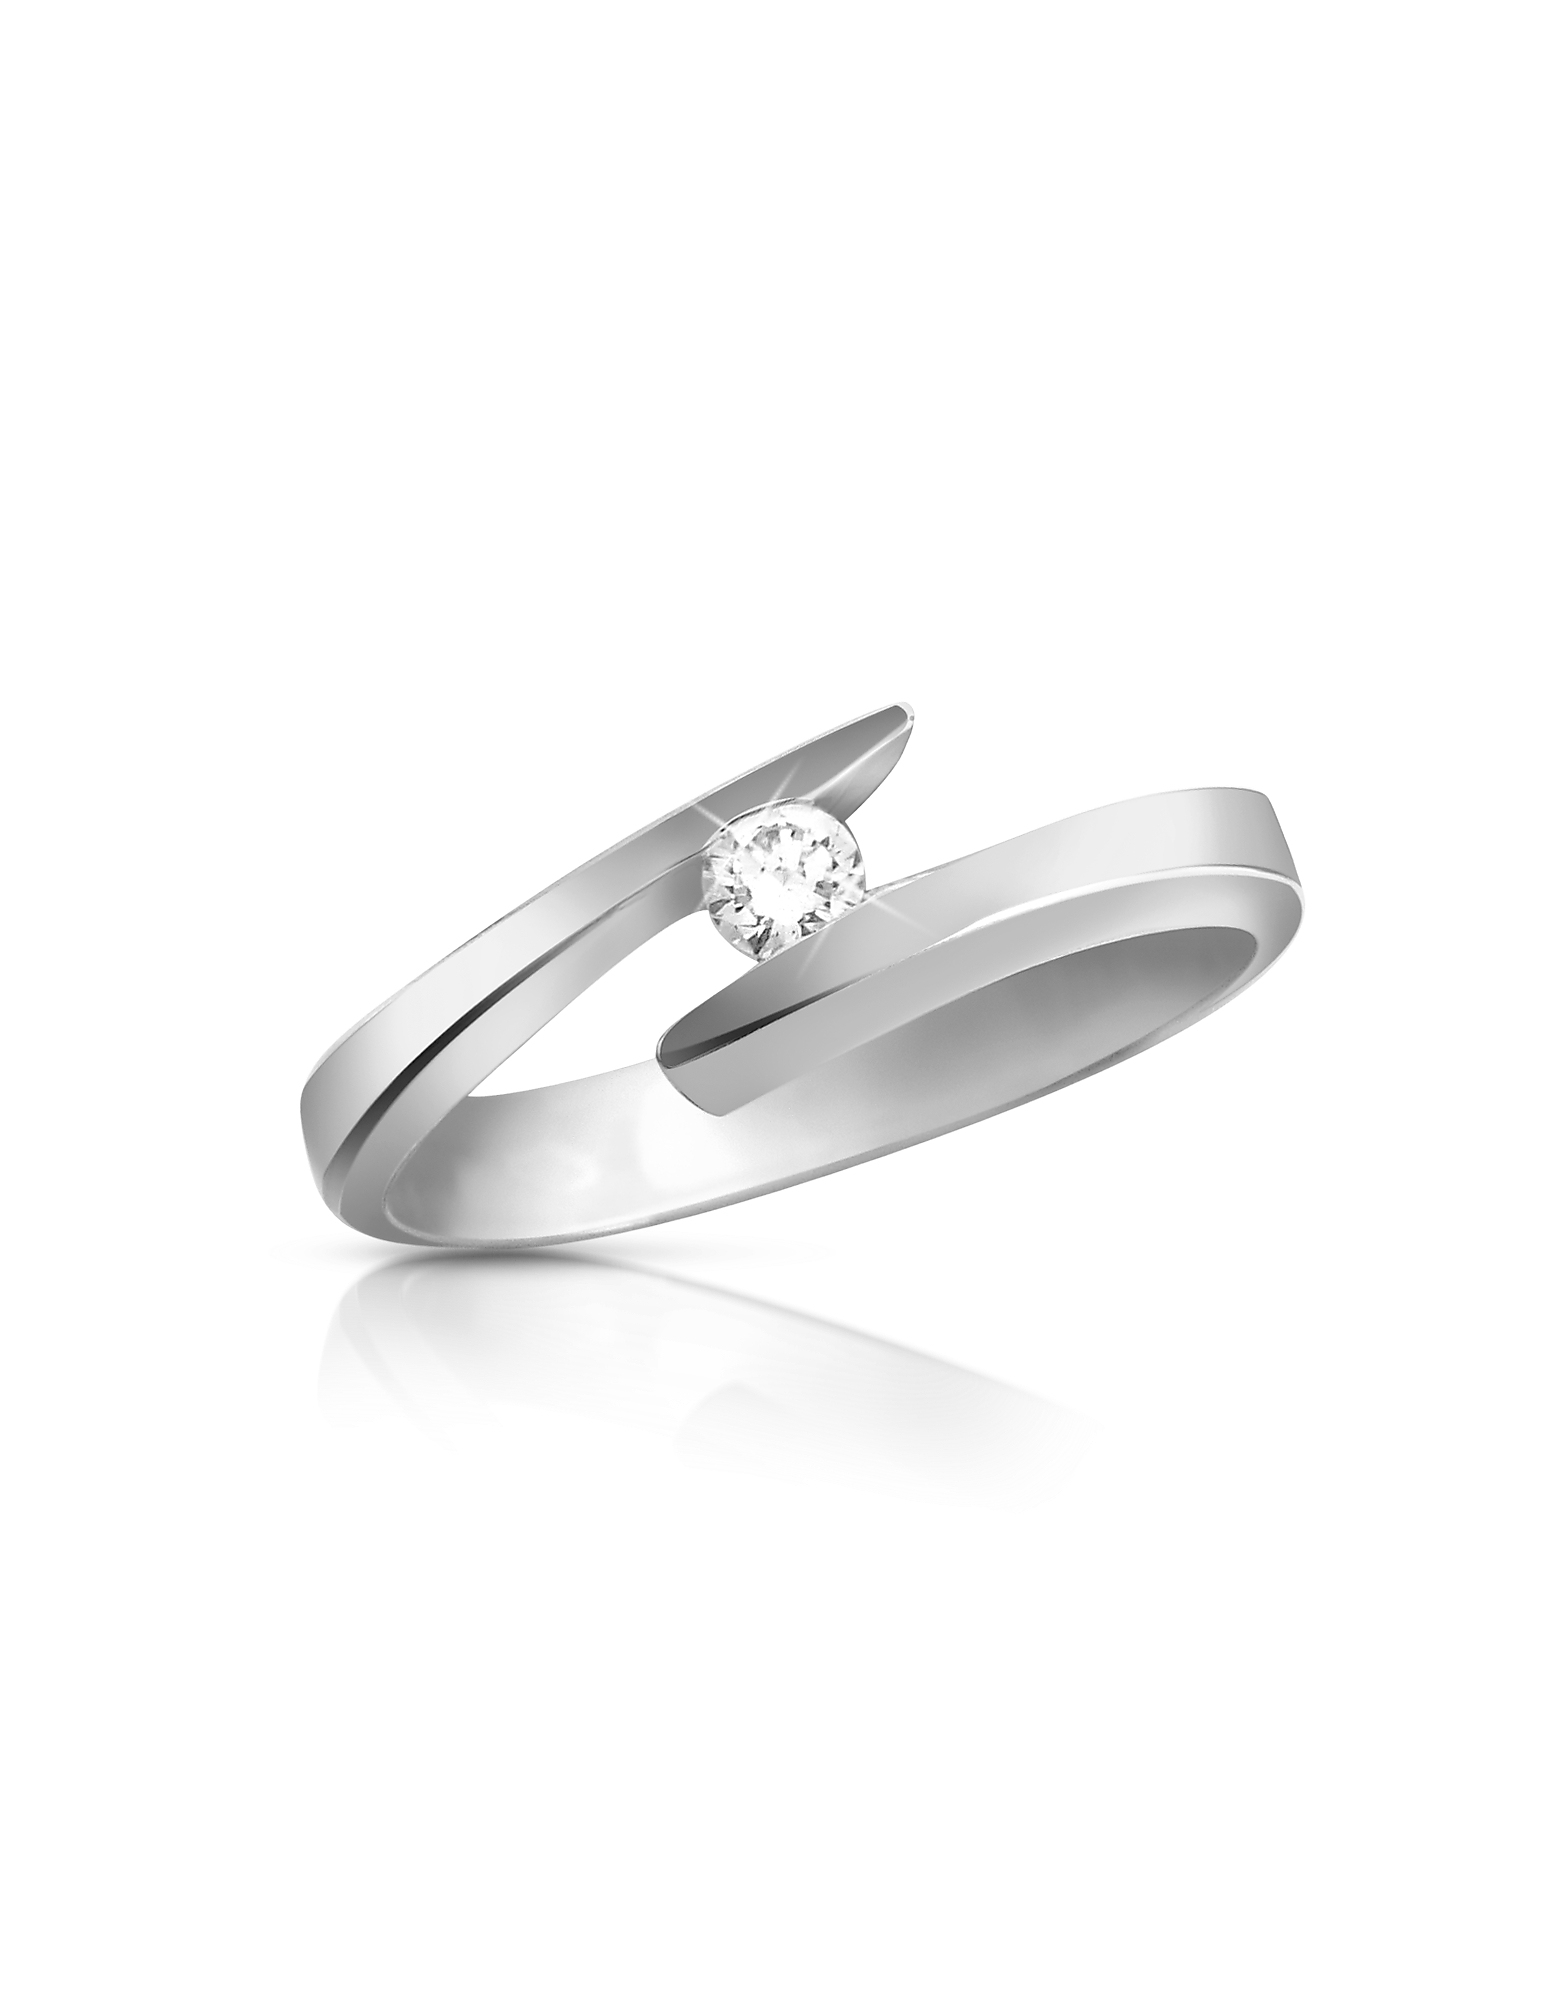 Forzieri Rings, 0.065 ct Diamond 18K Gold Solitaire Ring